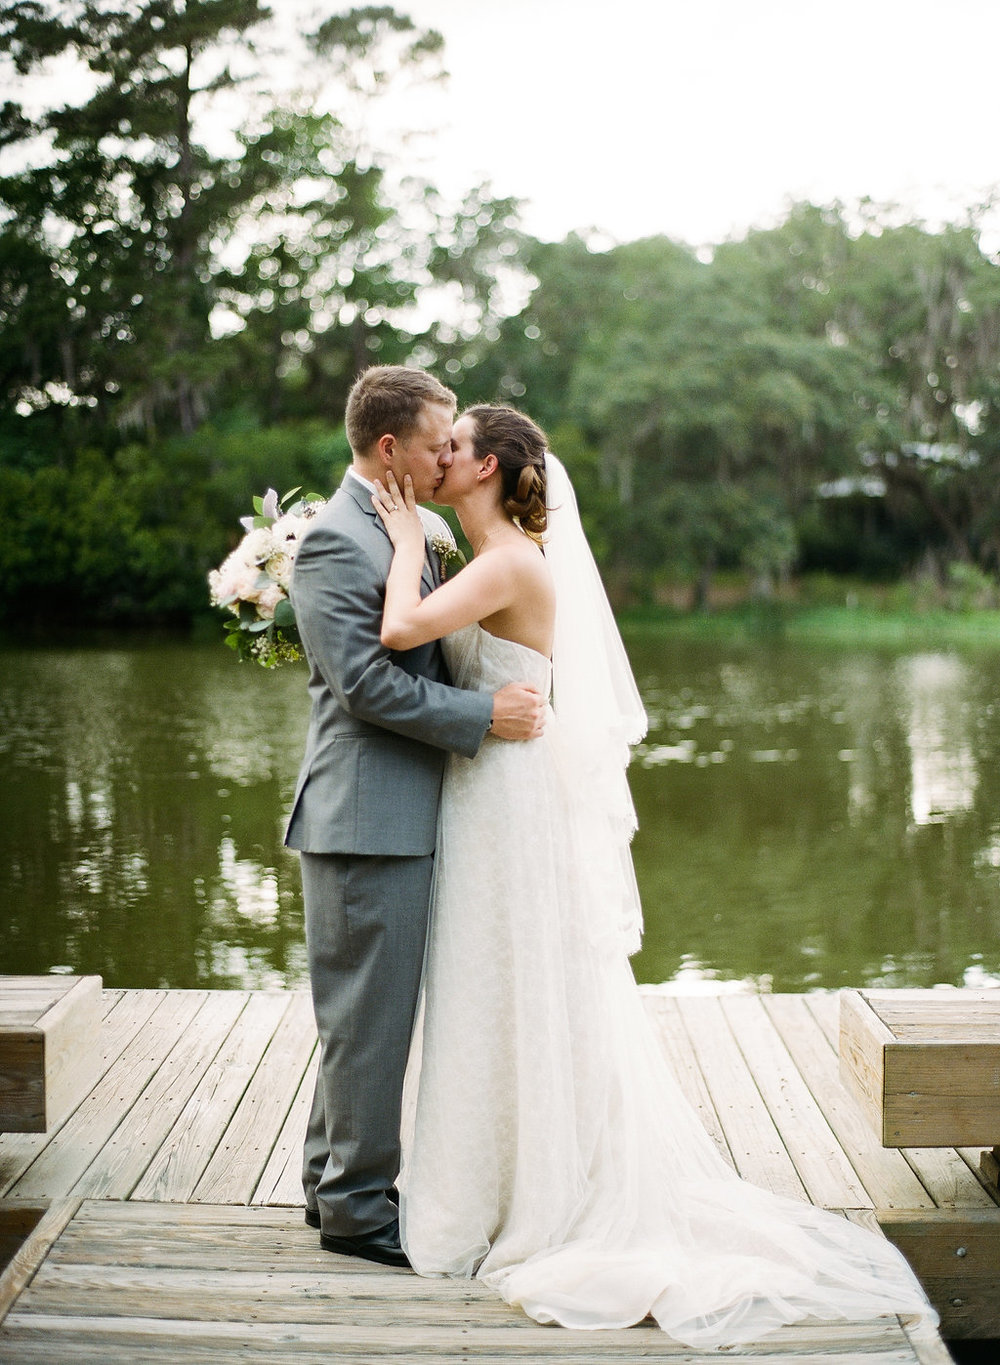 meagan-and-brenden-rach-loves-troy-photography-ivory-and-beau-bridal-boutqiue-ti-adora-wedding-dress-gold-lace-wedding-dress-savannah-wedding-planner-savannah-weddings-oldfield-plantation-wedding-savannah-florist-30.jpg